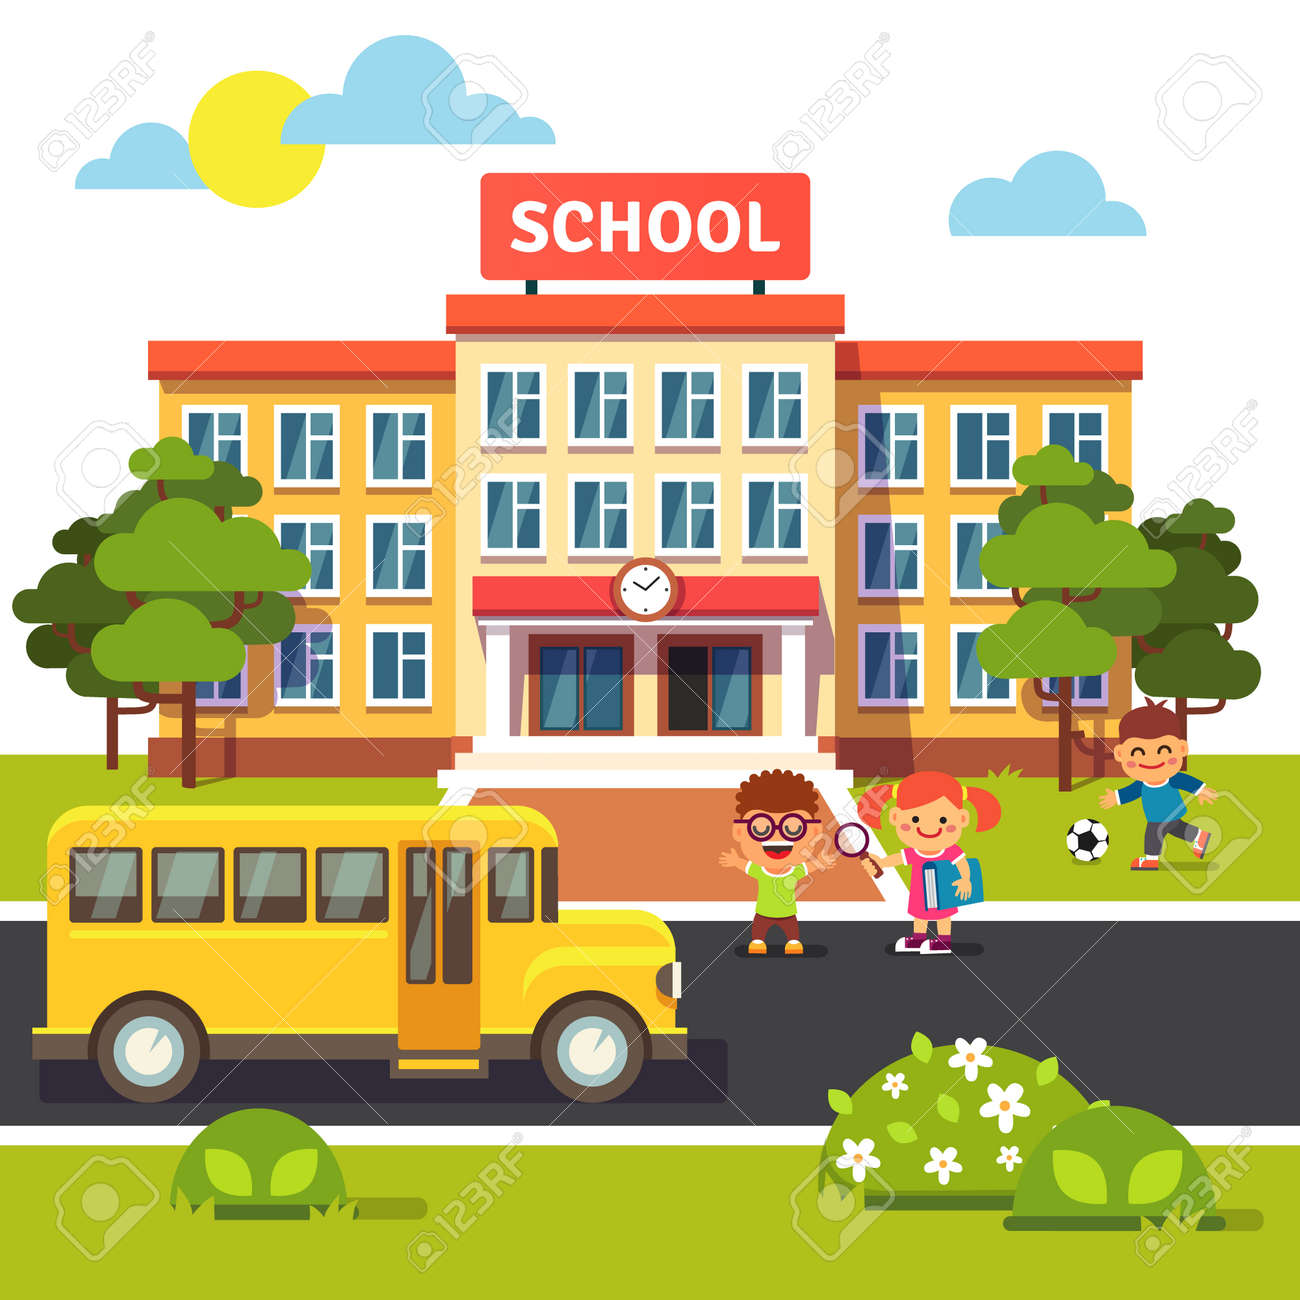 hight resolution of school building bus and front yard with students children flat style vector illustration isolated